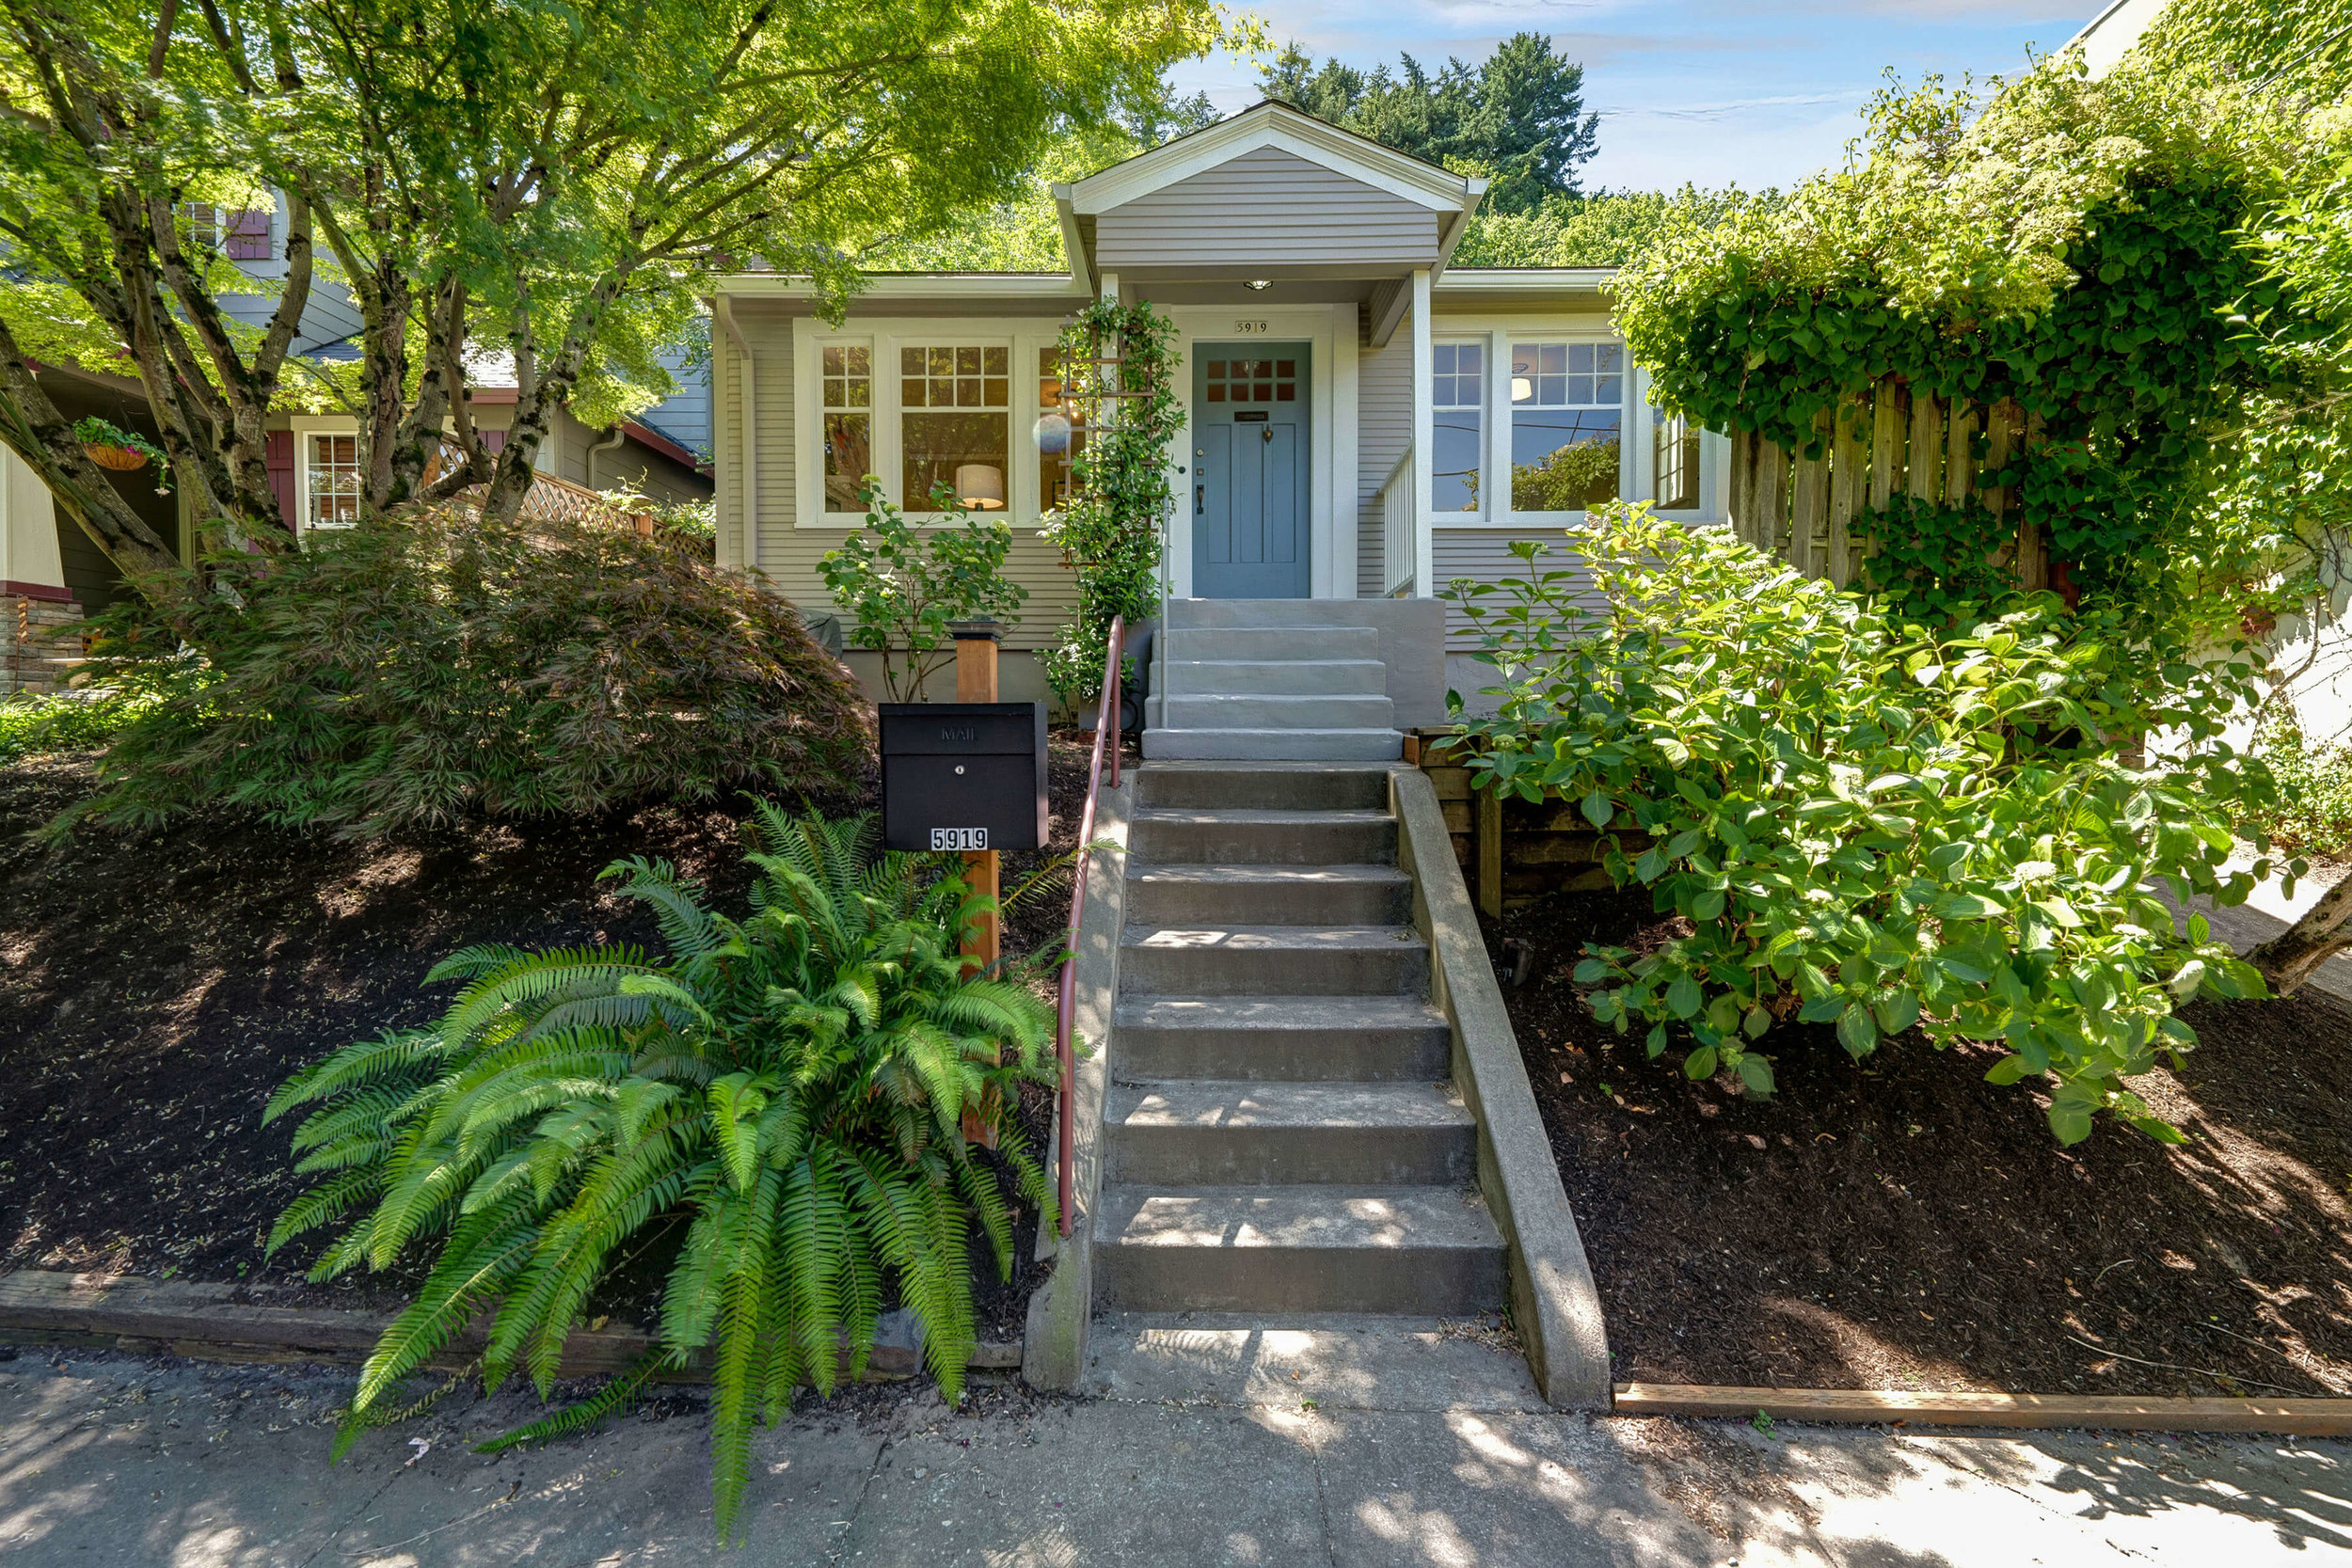 5919 SW Corbett Ave.<strong>SOLD</strong>